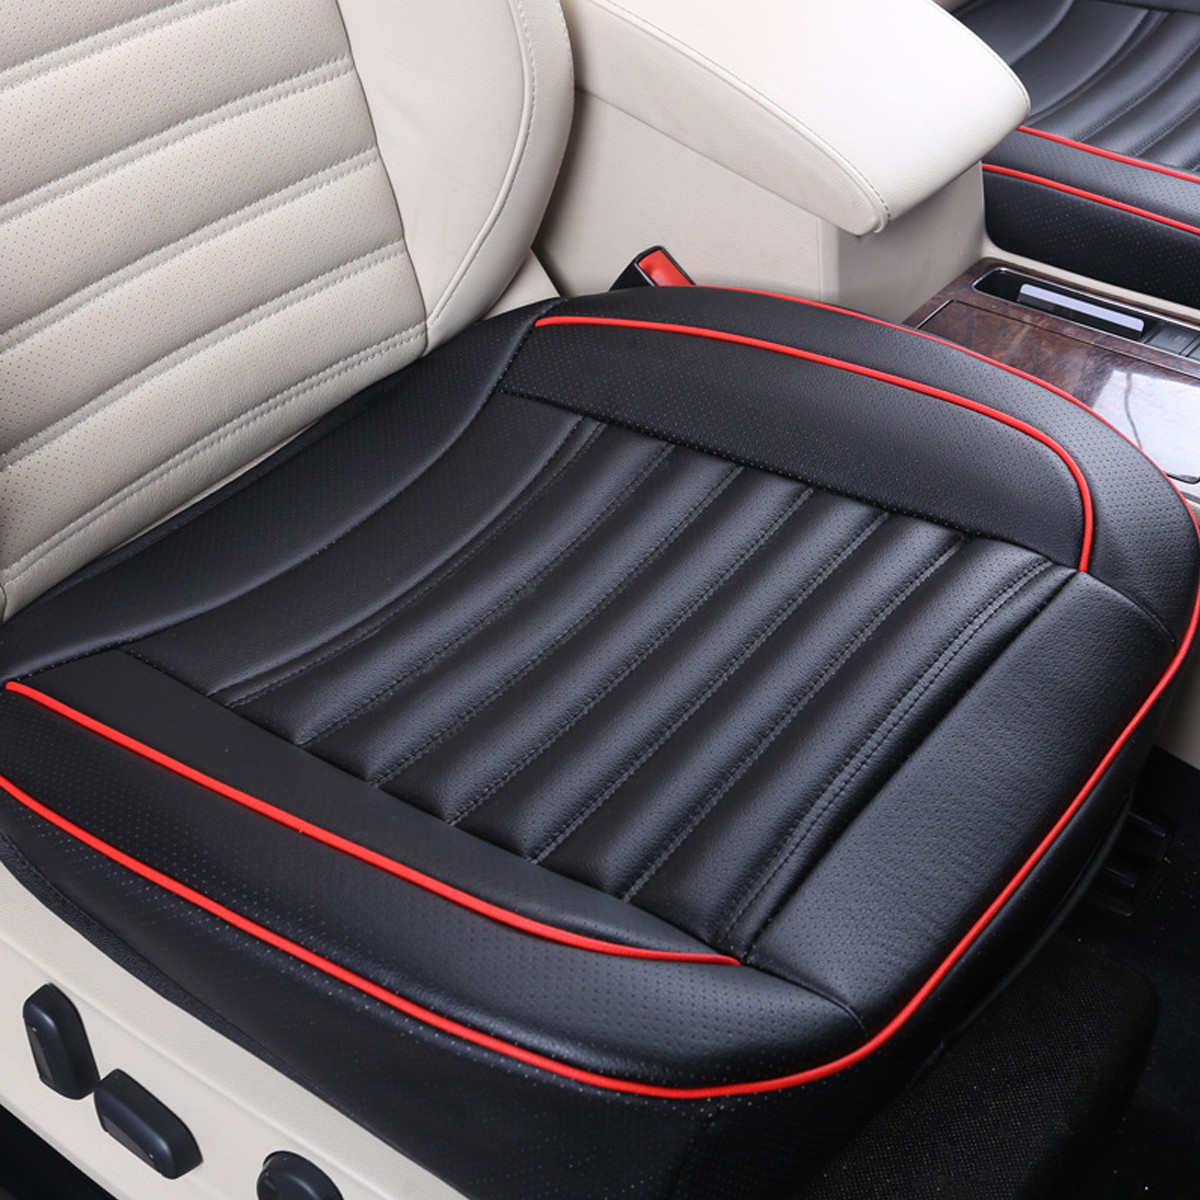 PU Leather Car Seat Cushion Seat Cover Protector Mat with Organizer for Universal Car SUV Truck